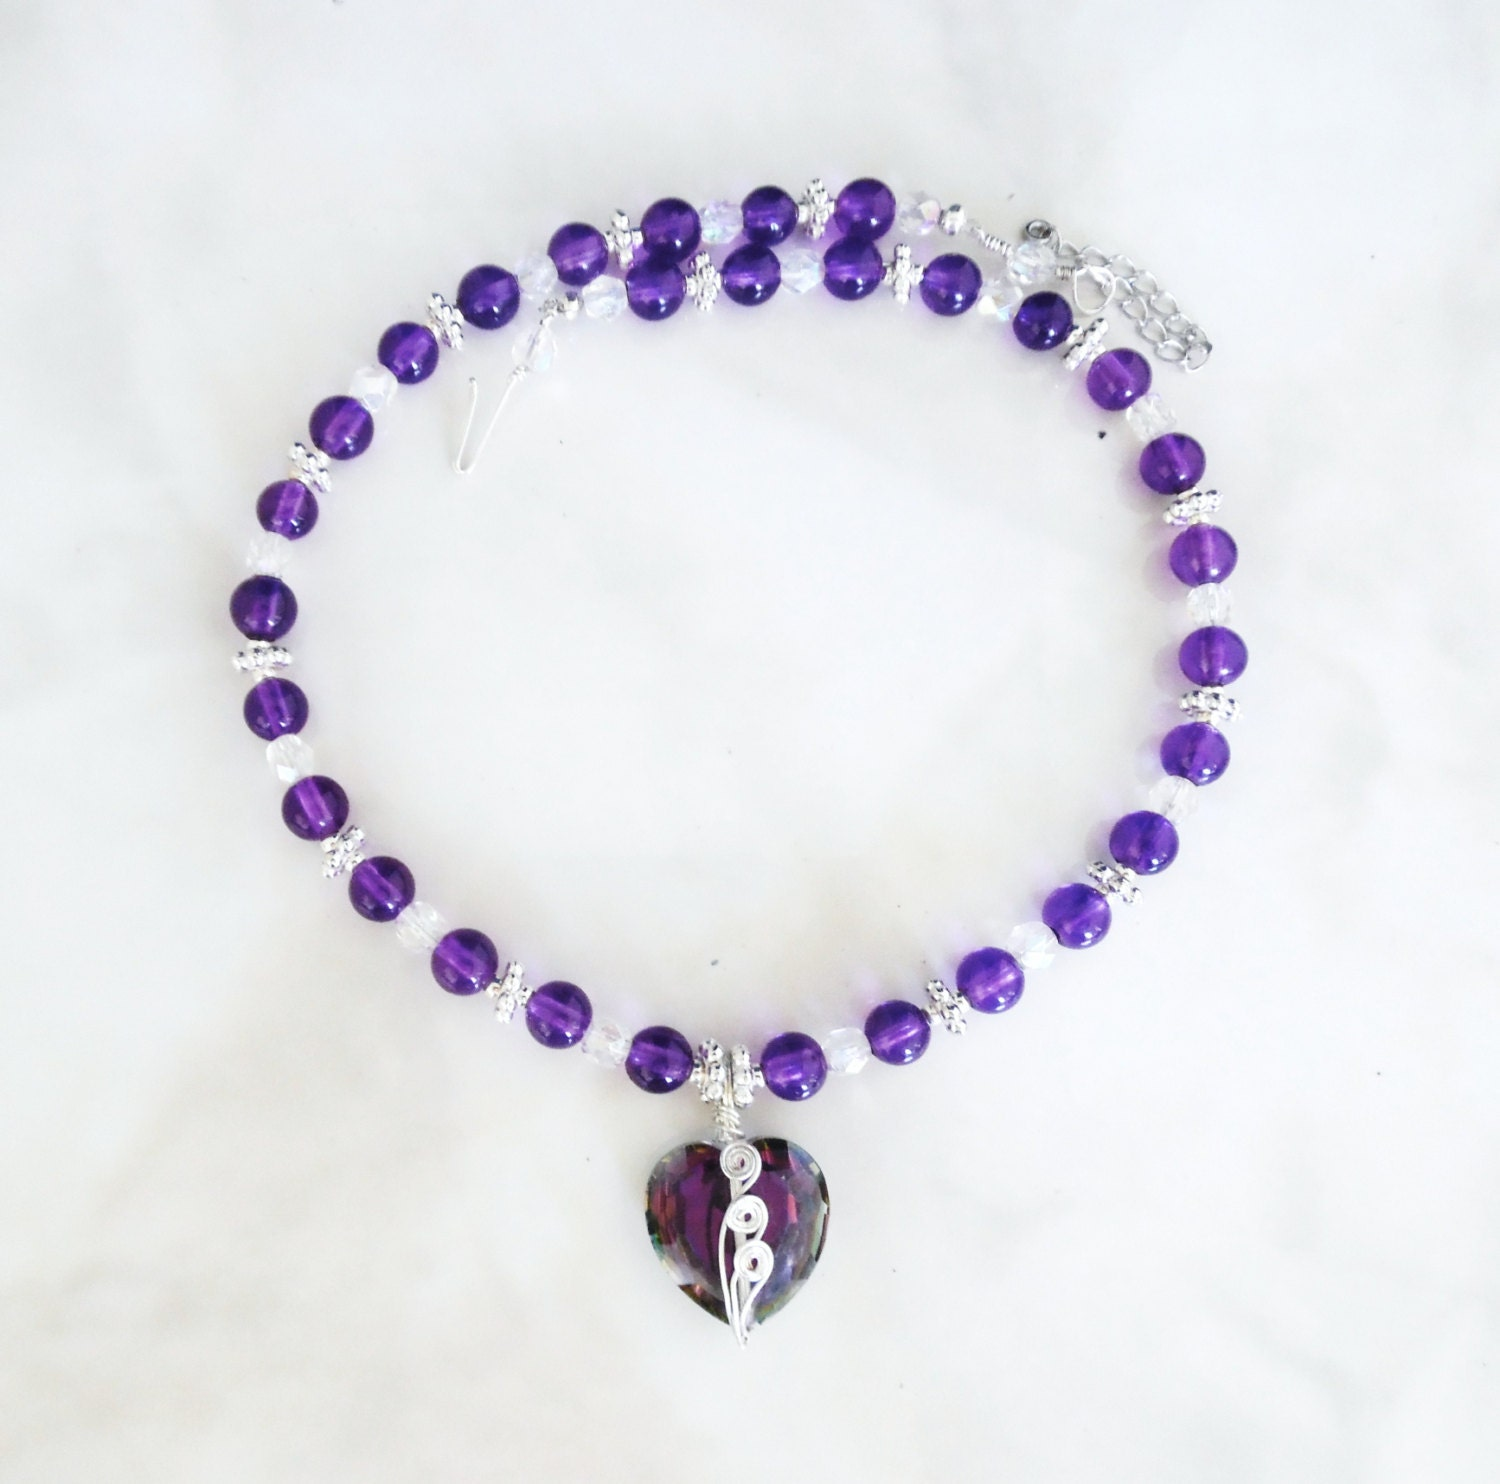 amethyst crystal necklace - photo #41